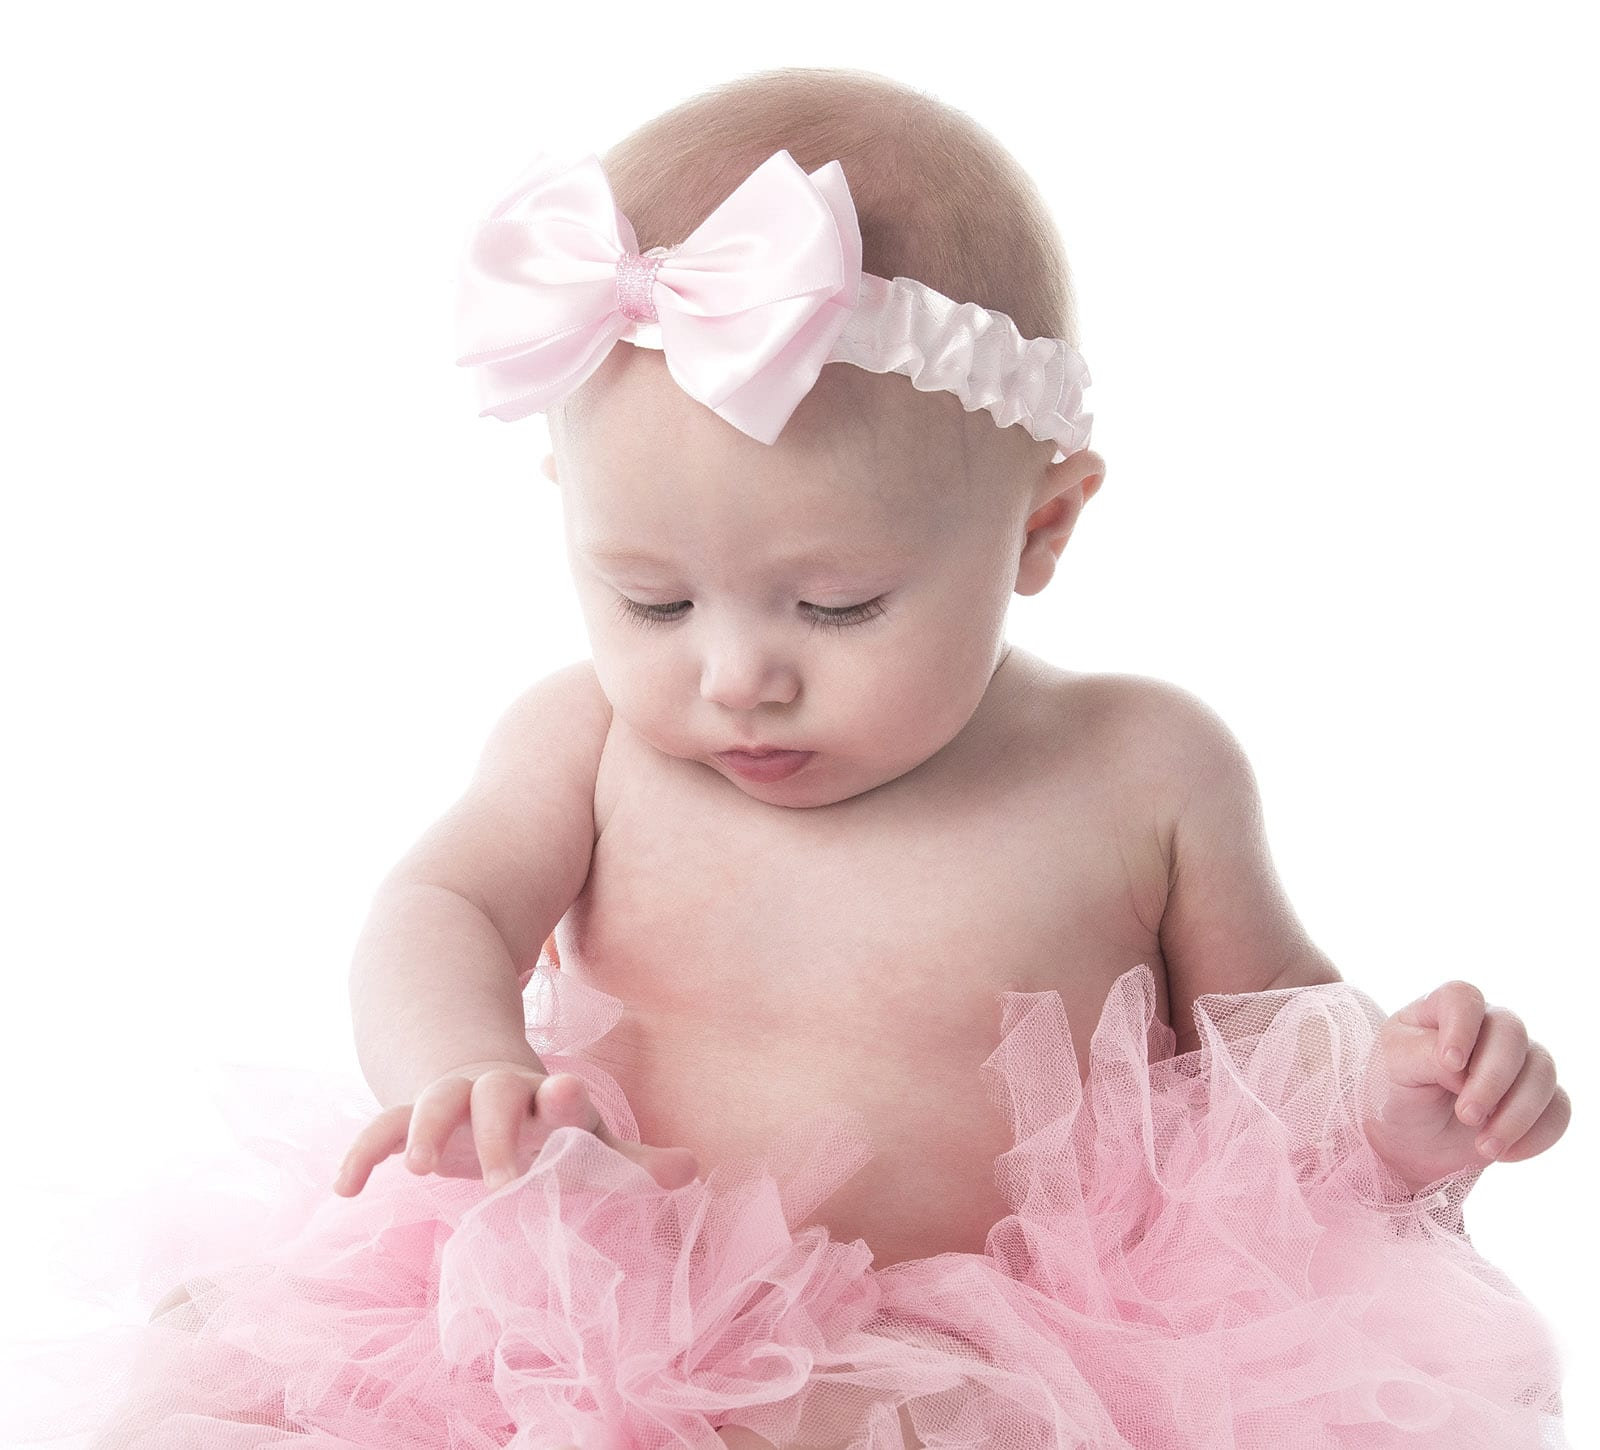 baby-photos-twofrontteeth18